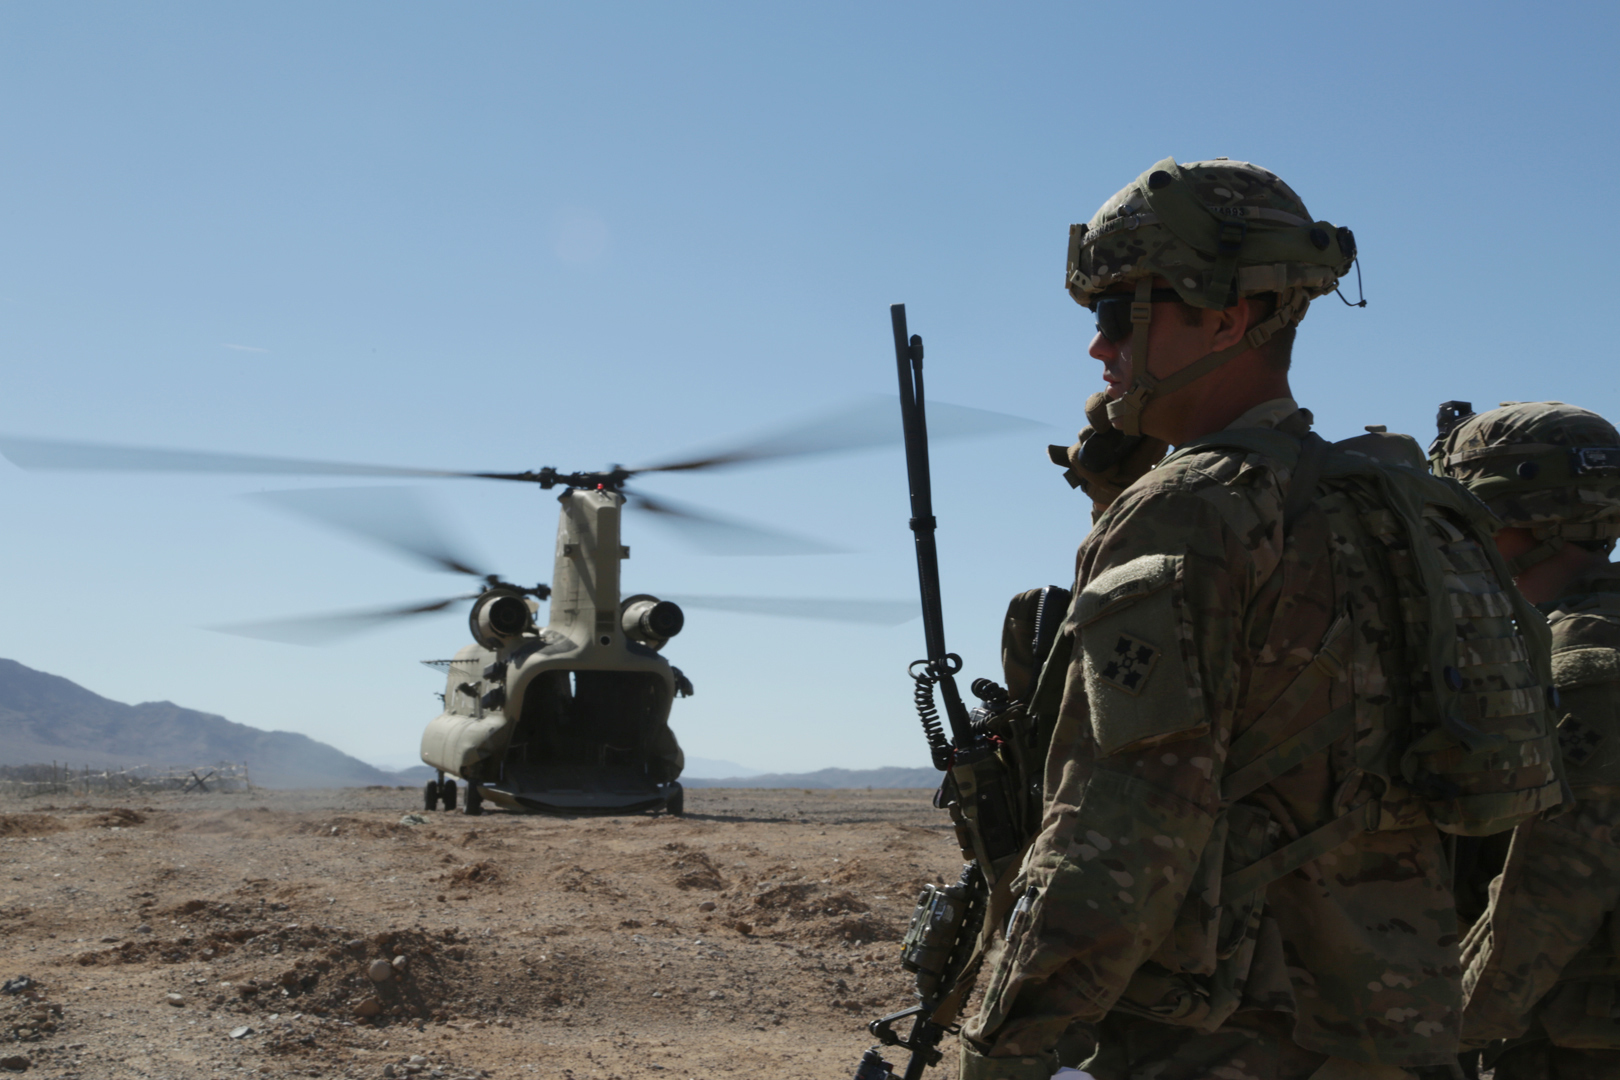 4th Infantry Division Soldiers provide aid to local nationals